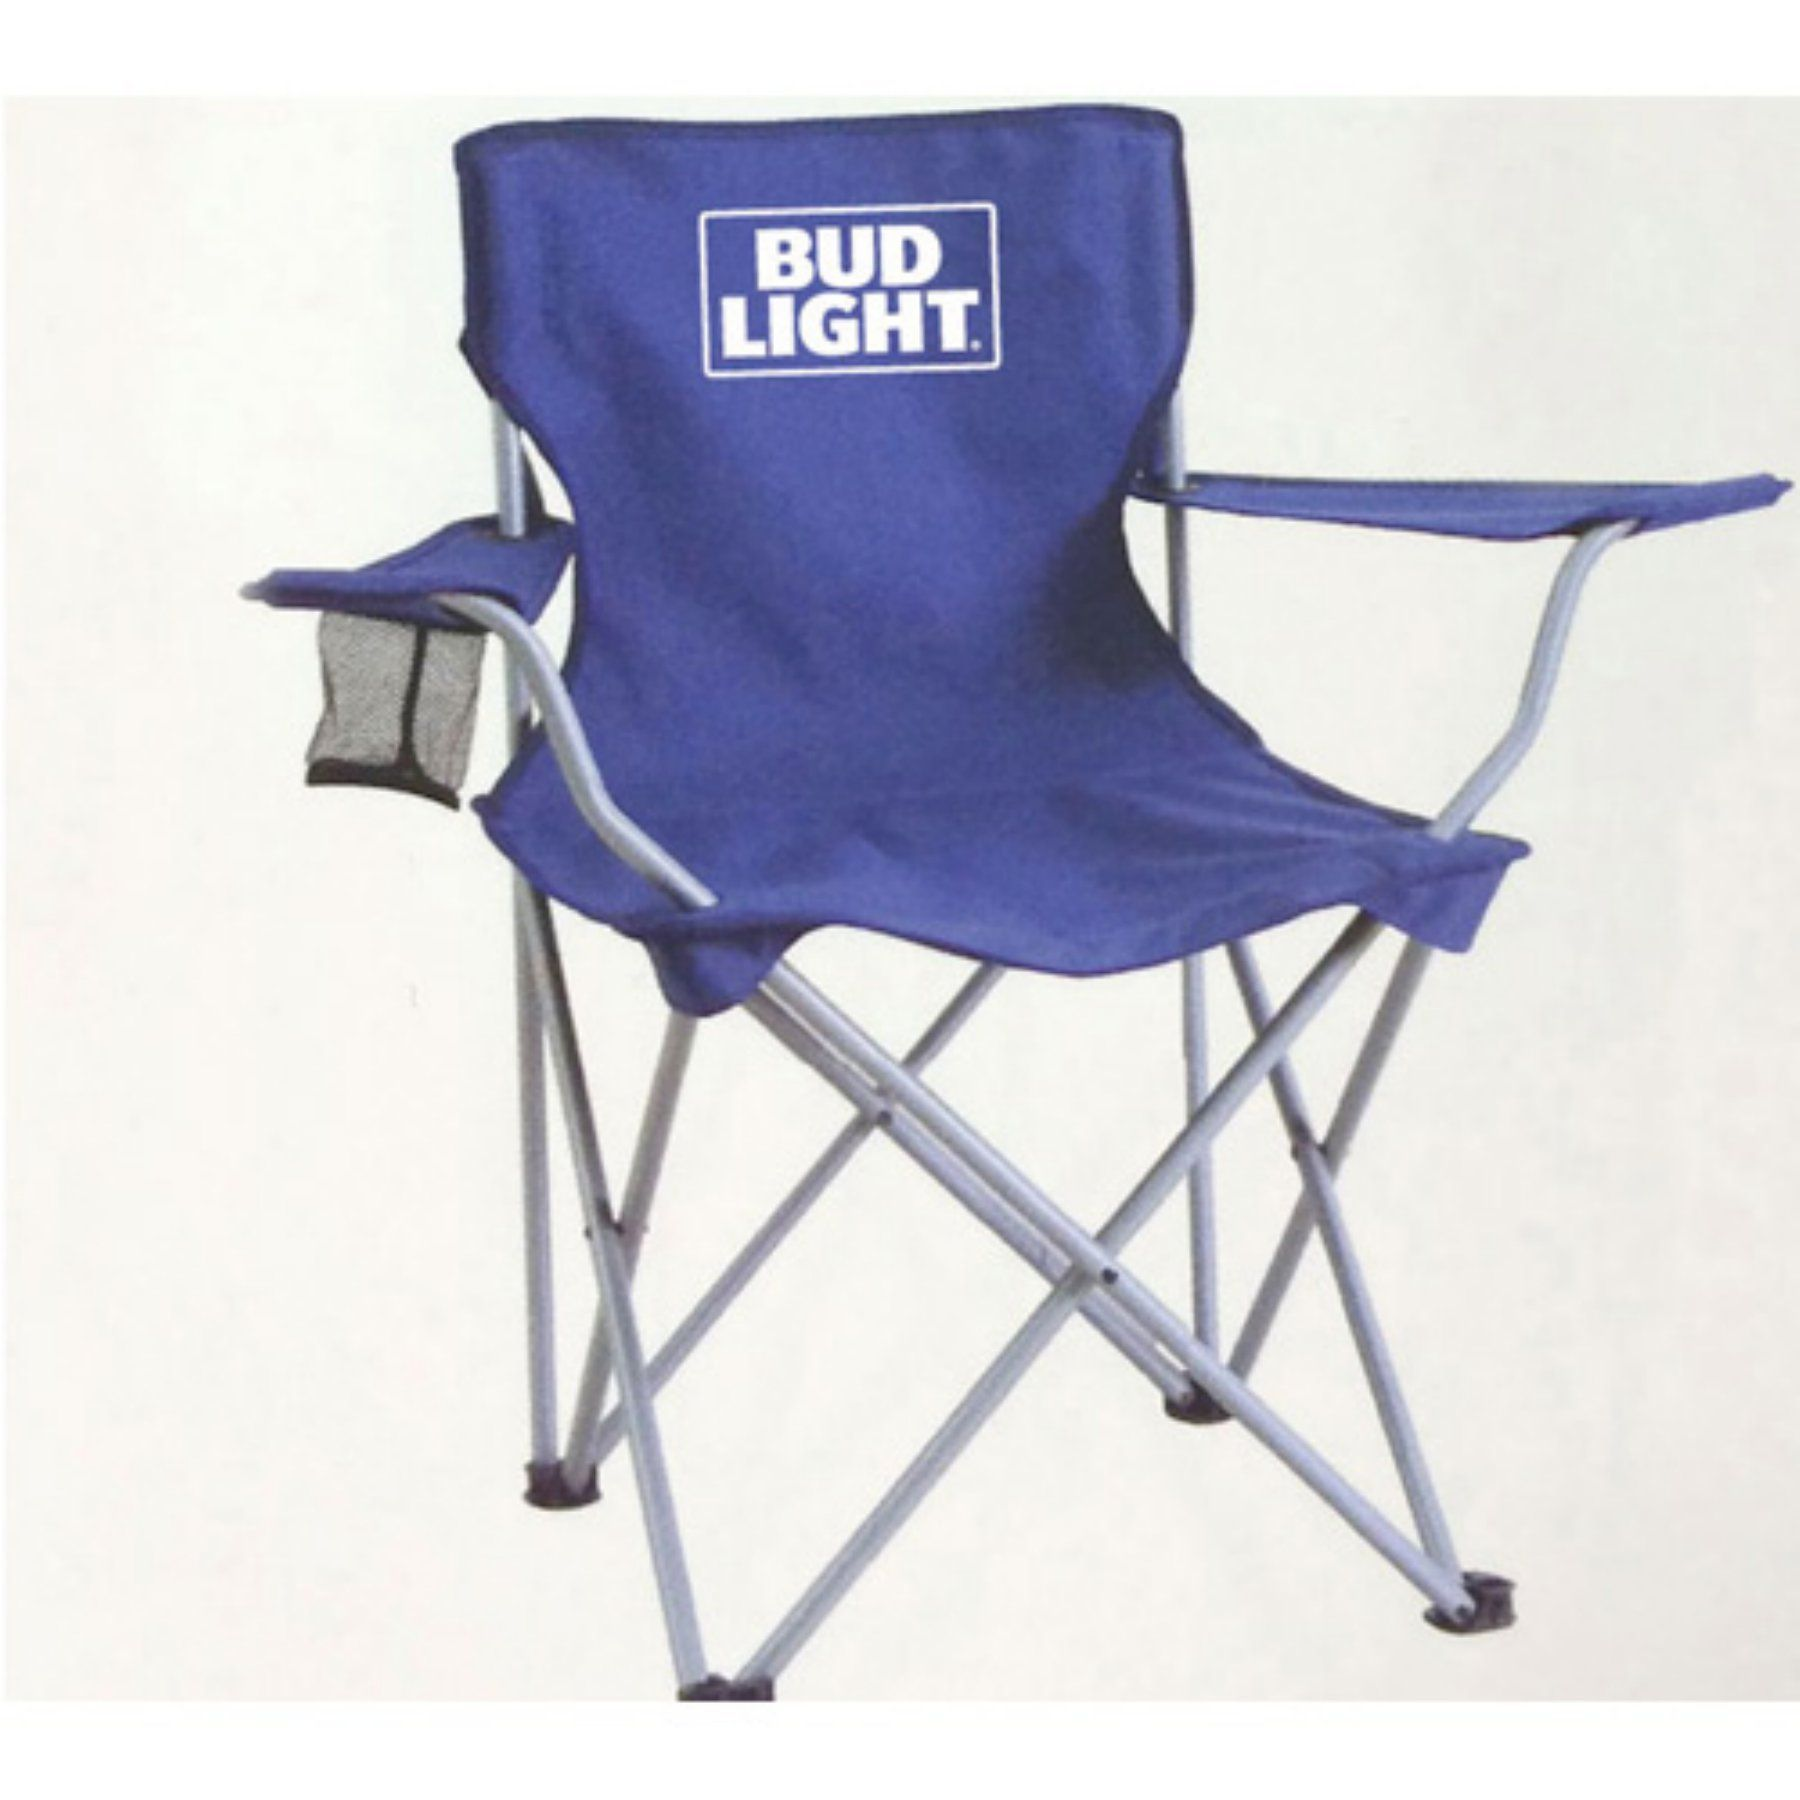 Outdoor Bud Light Straight Back Folding Lawn Chair TG 7860BL